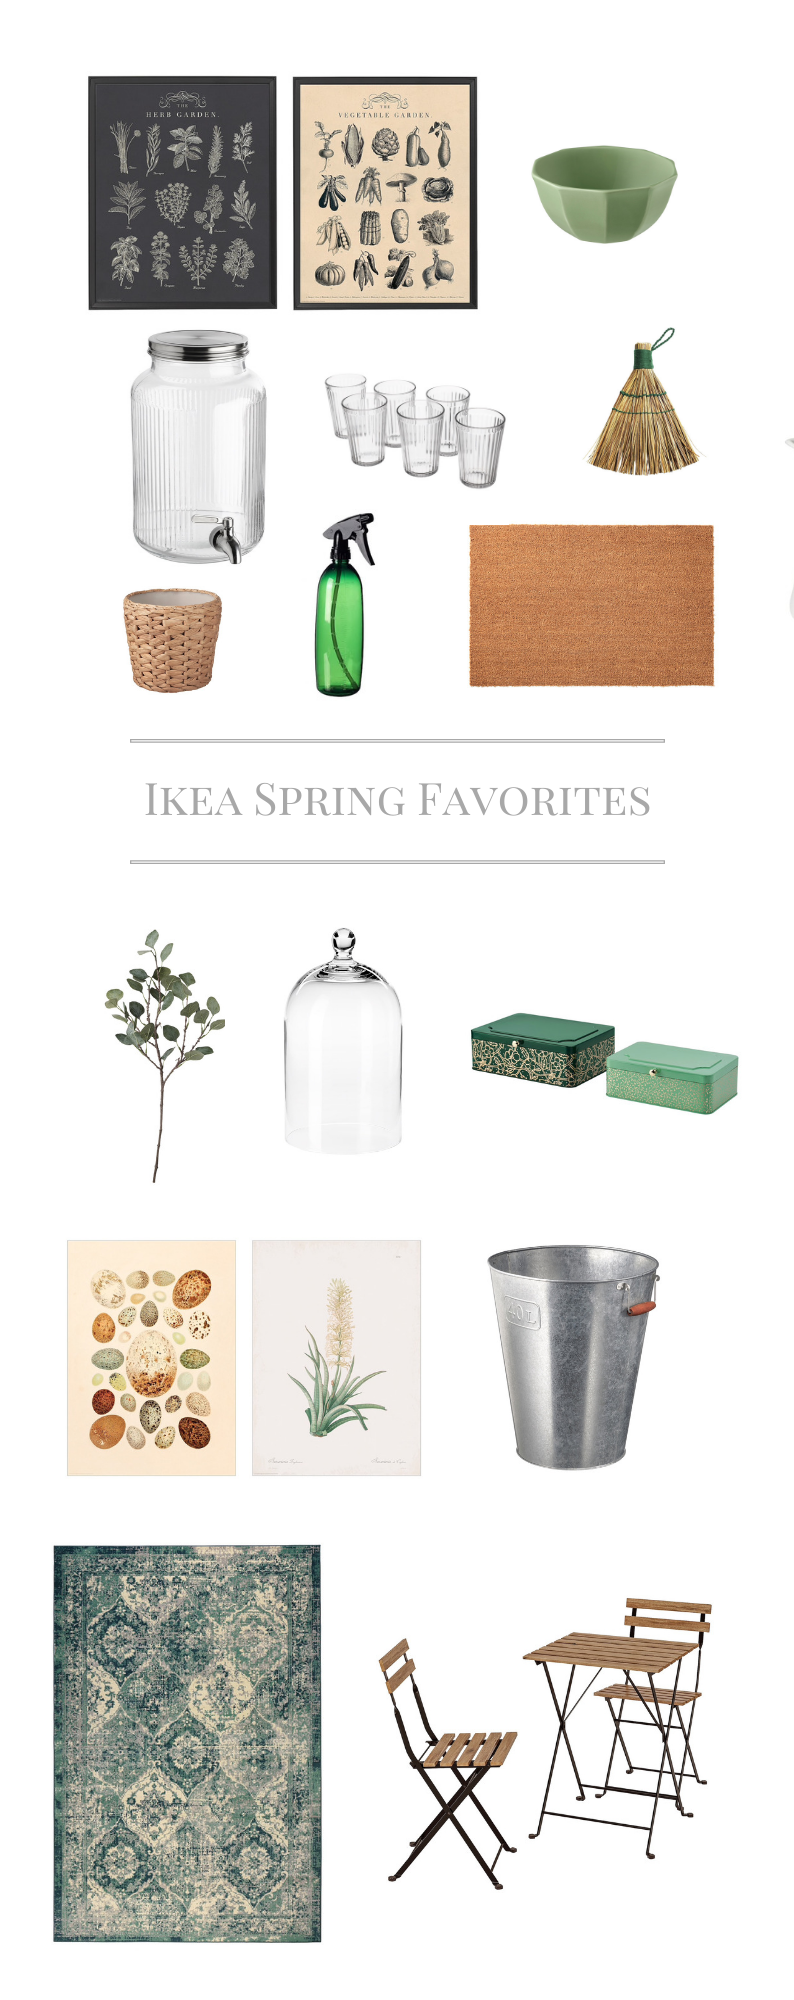 Ikea Farmhouse Spring New 2020 by sheholdsdearly.com